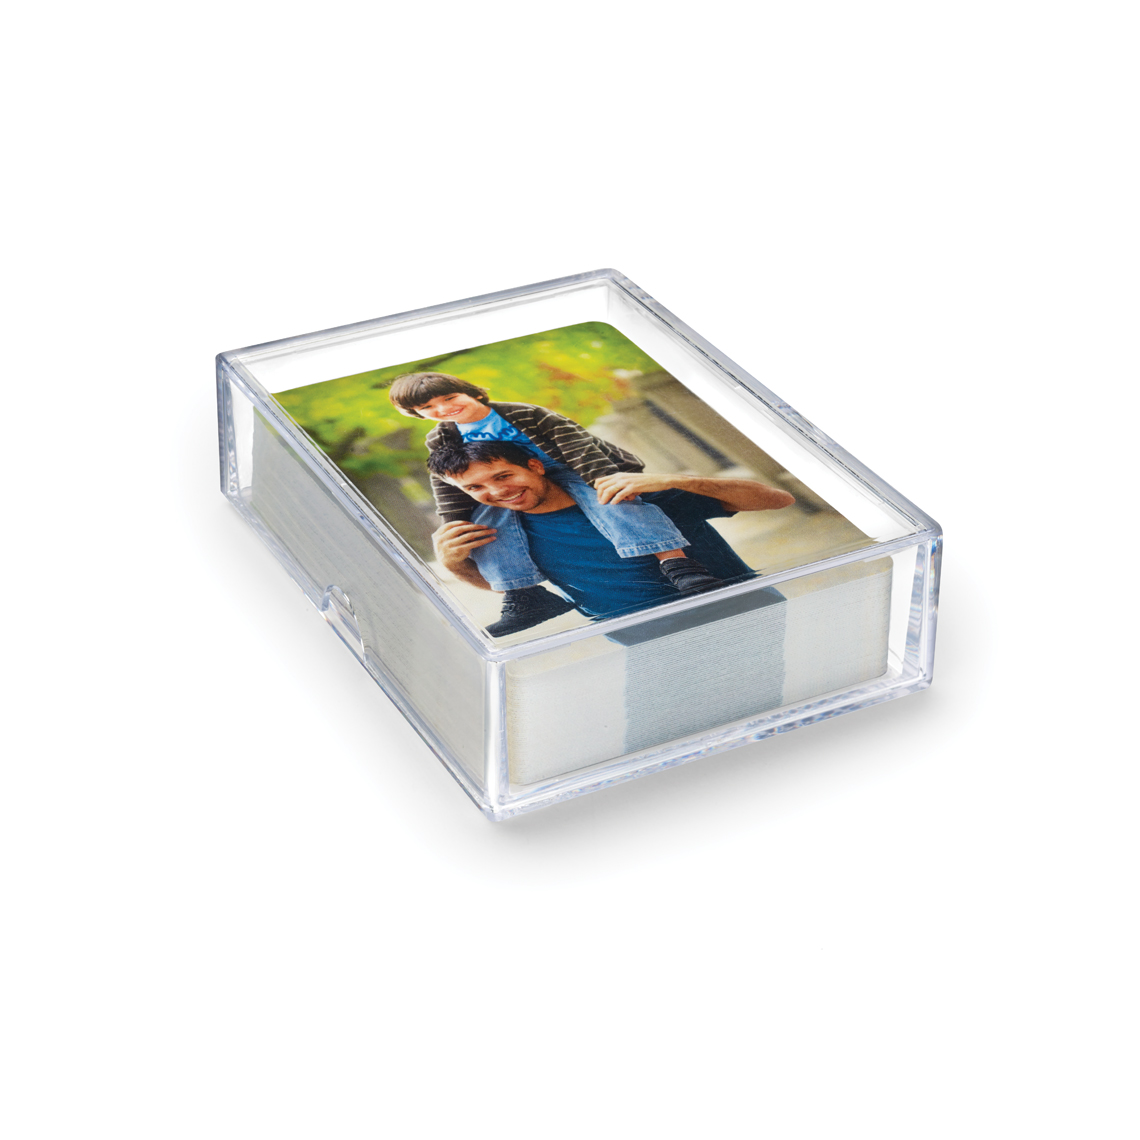 Photo Gifts | Personalized Photo Gifts | CVS Photo